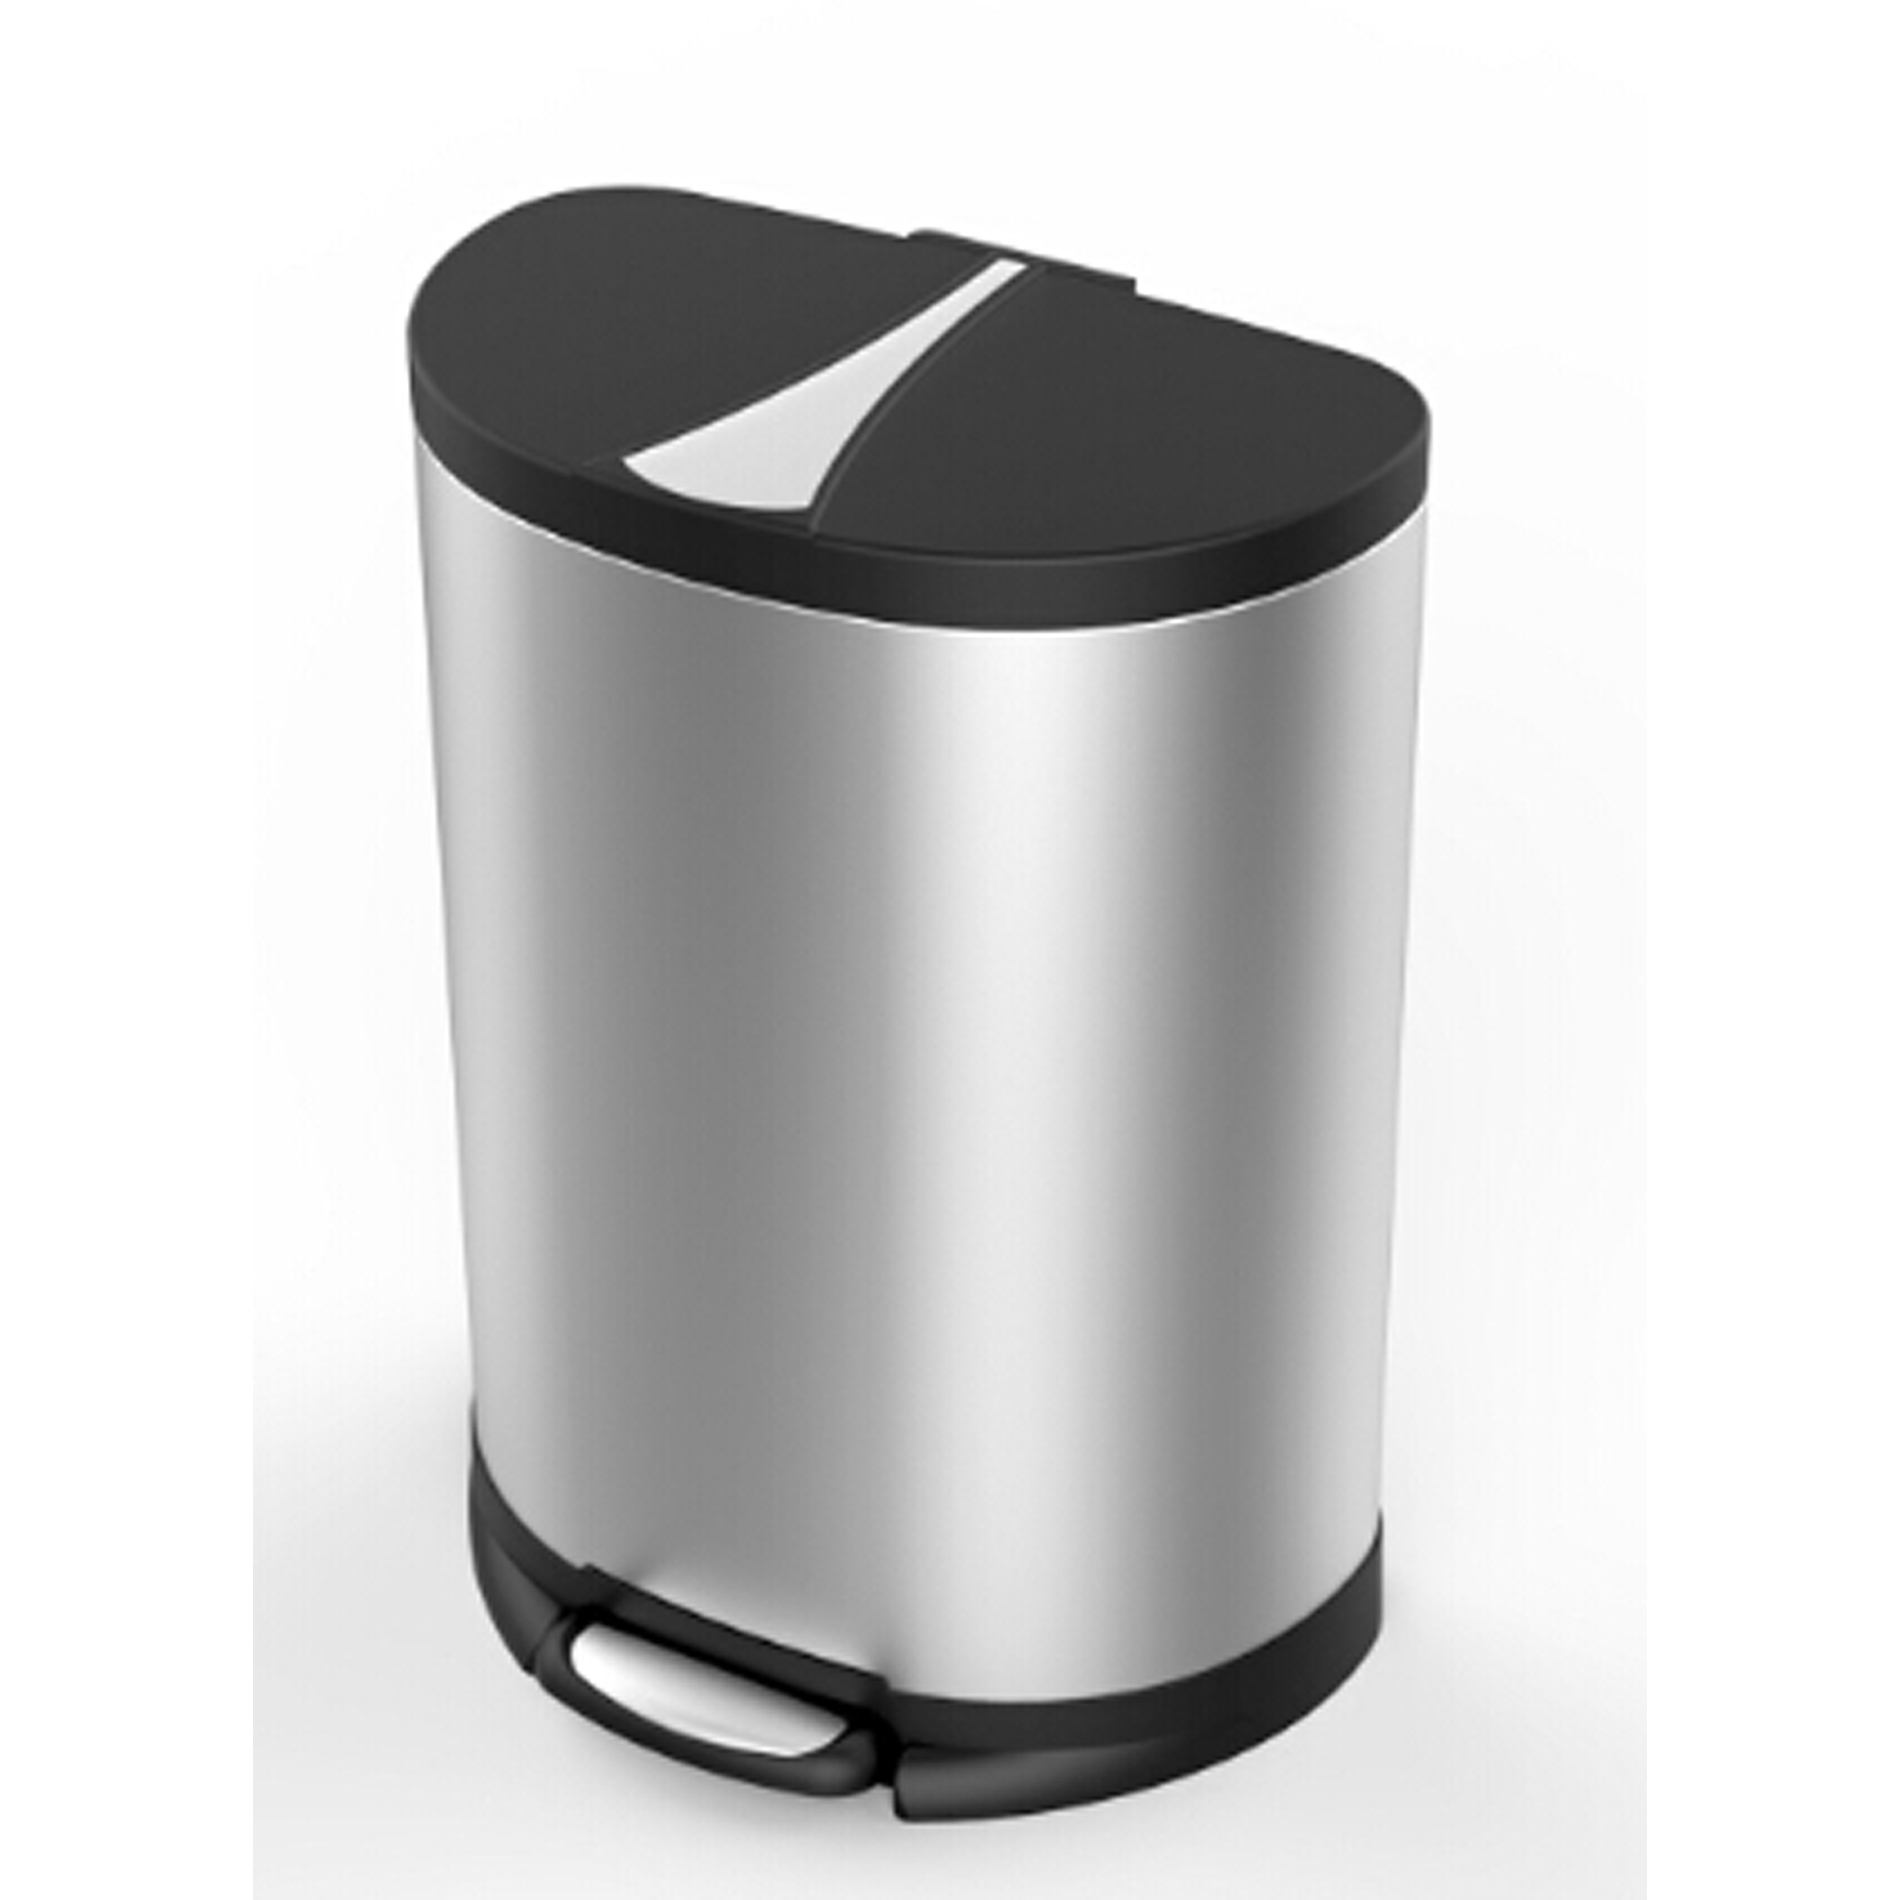 Small White Trash Can With Lid Check Out Essential Home 50 Liter Semi Round Stainless Steel Trash Can Shopyourway